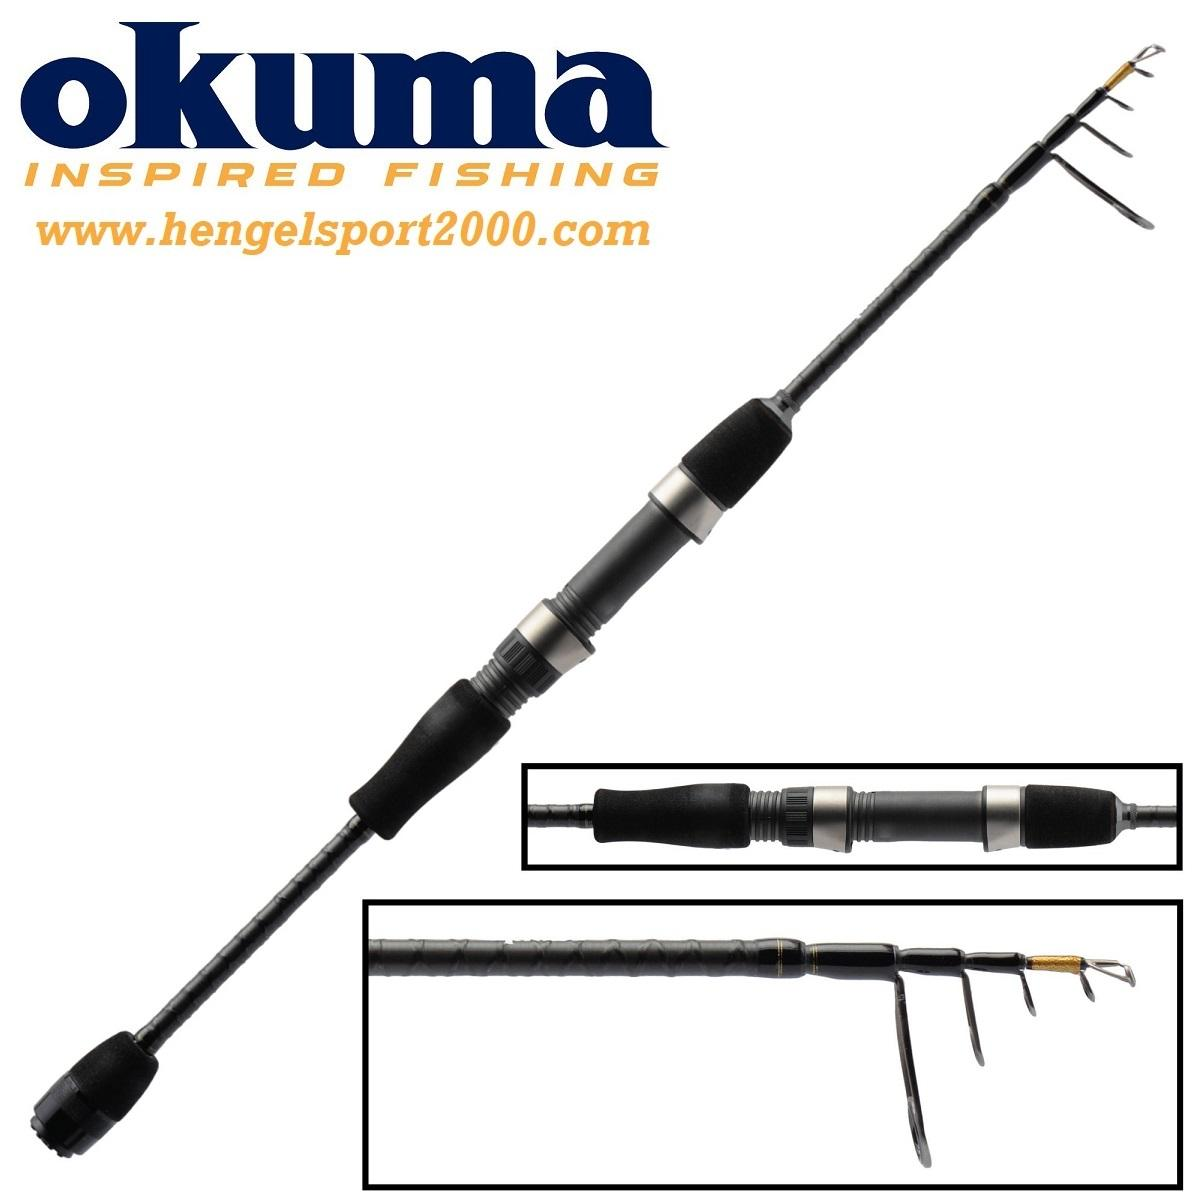 Okuma Light Range Fishing Tele Spin 210 cm 3 - 12 gram